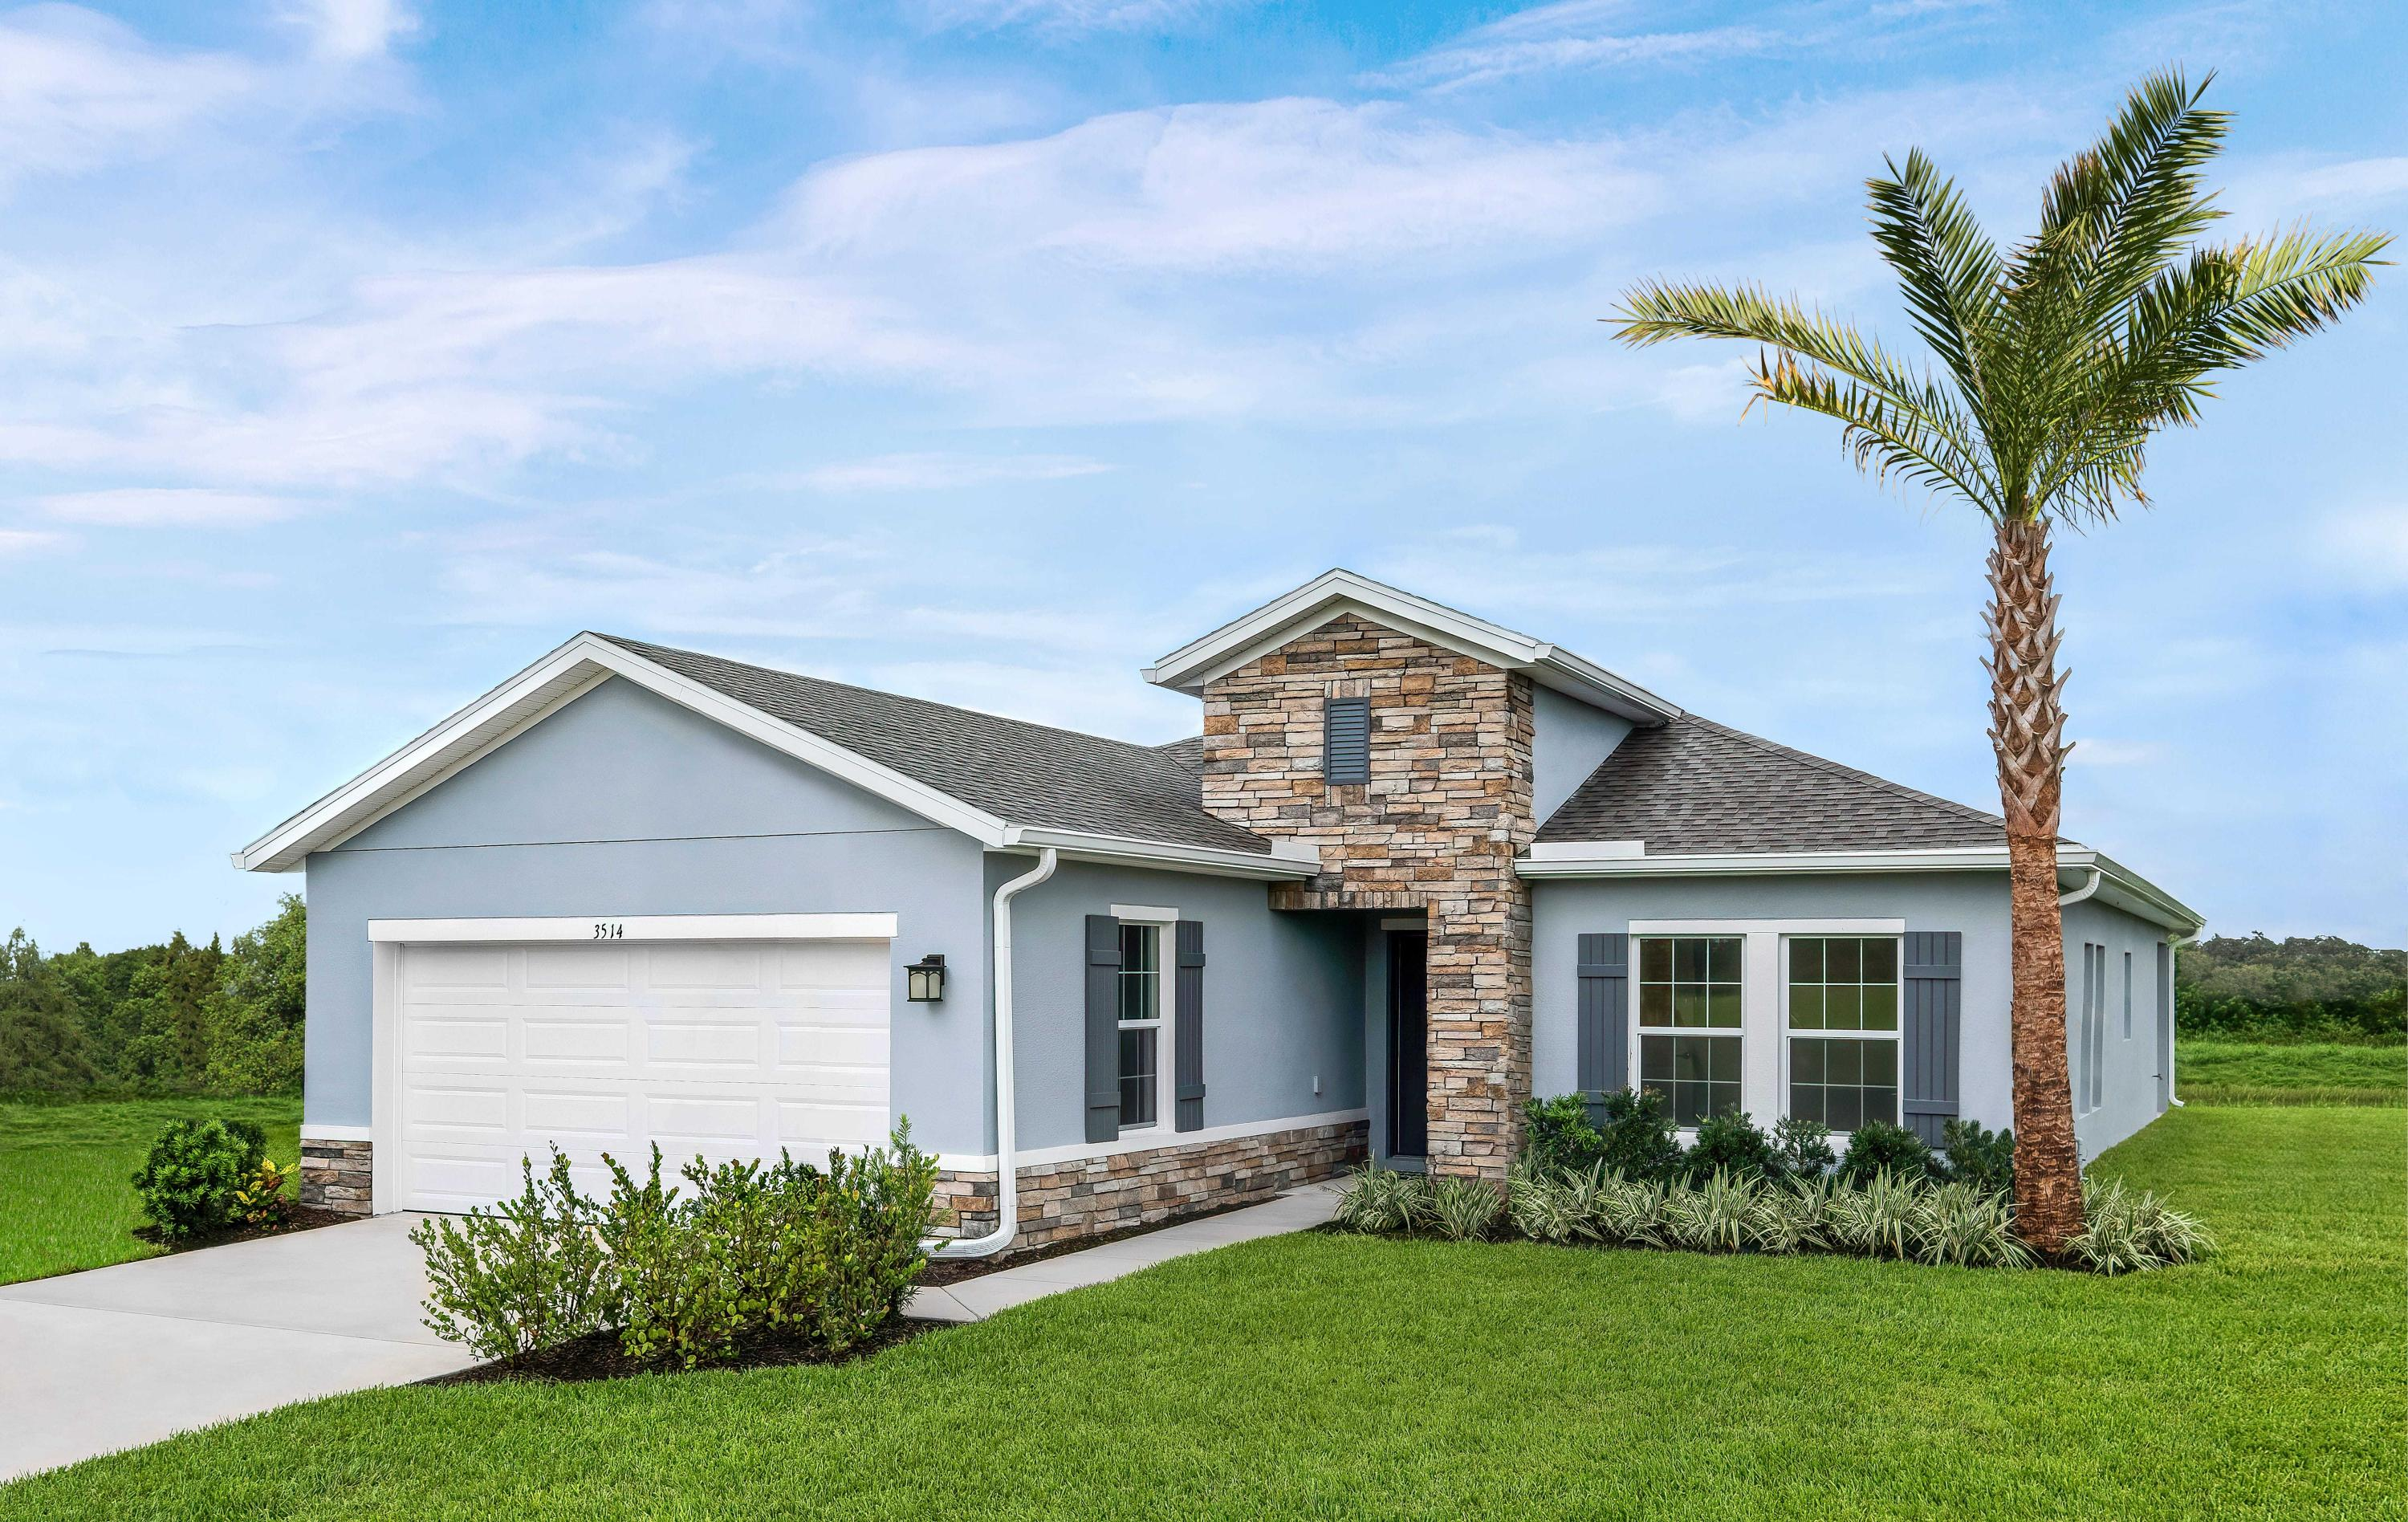 Photo of 3816 Lancove Way, Fort Pierce, FL 34981